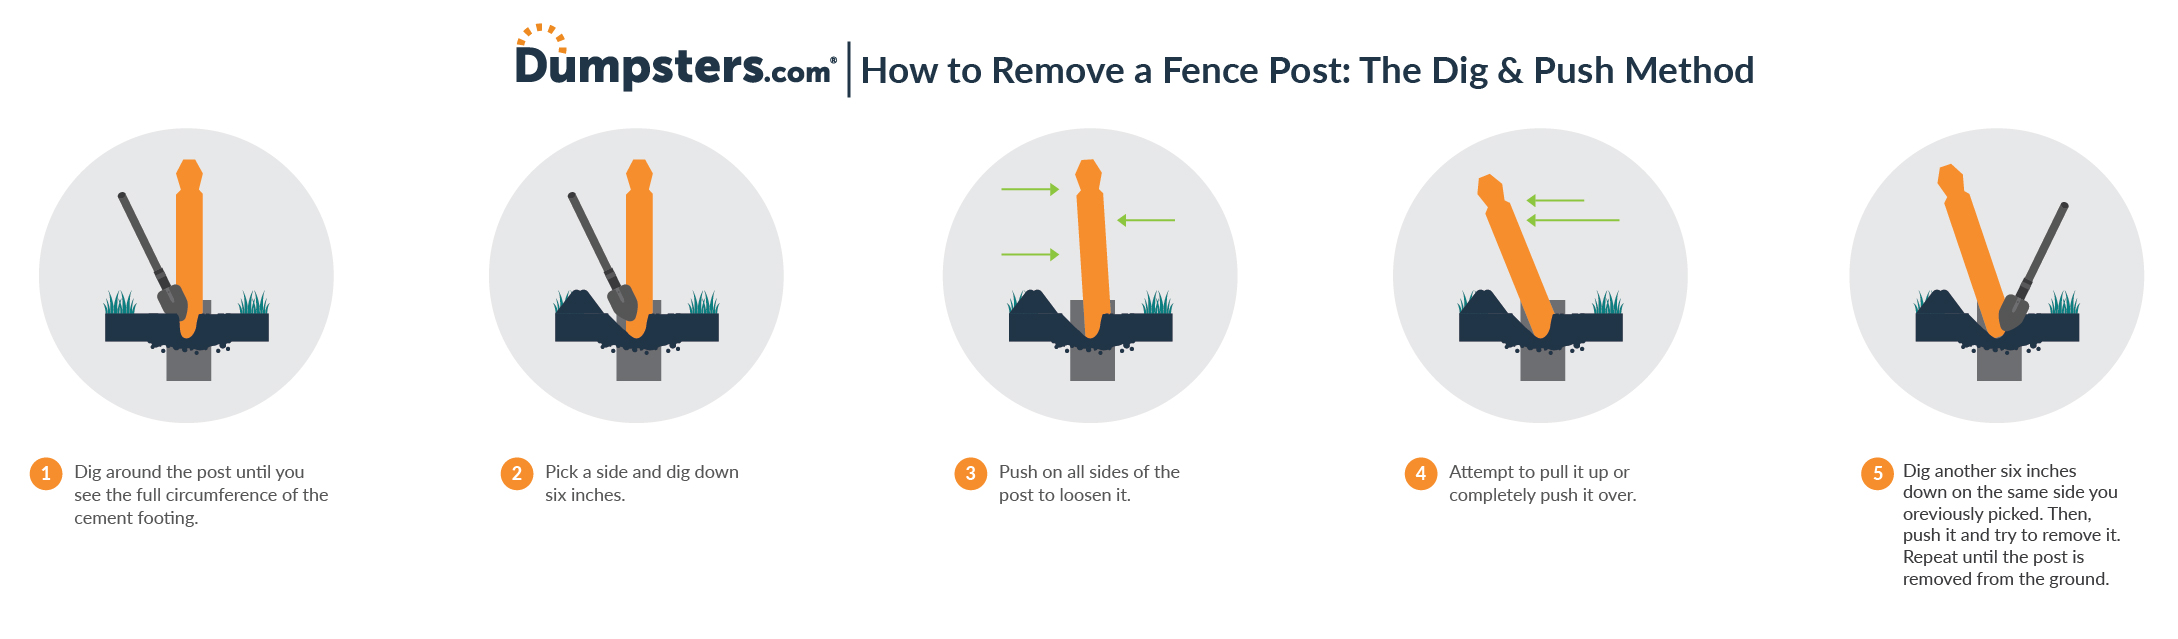 Dumpsters.com Infographic Detailing How to Remove A Fence Post by Digging.